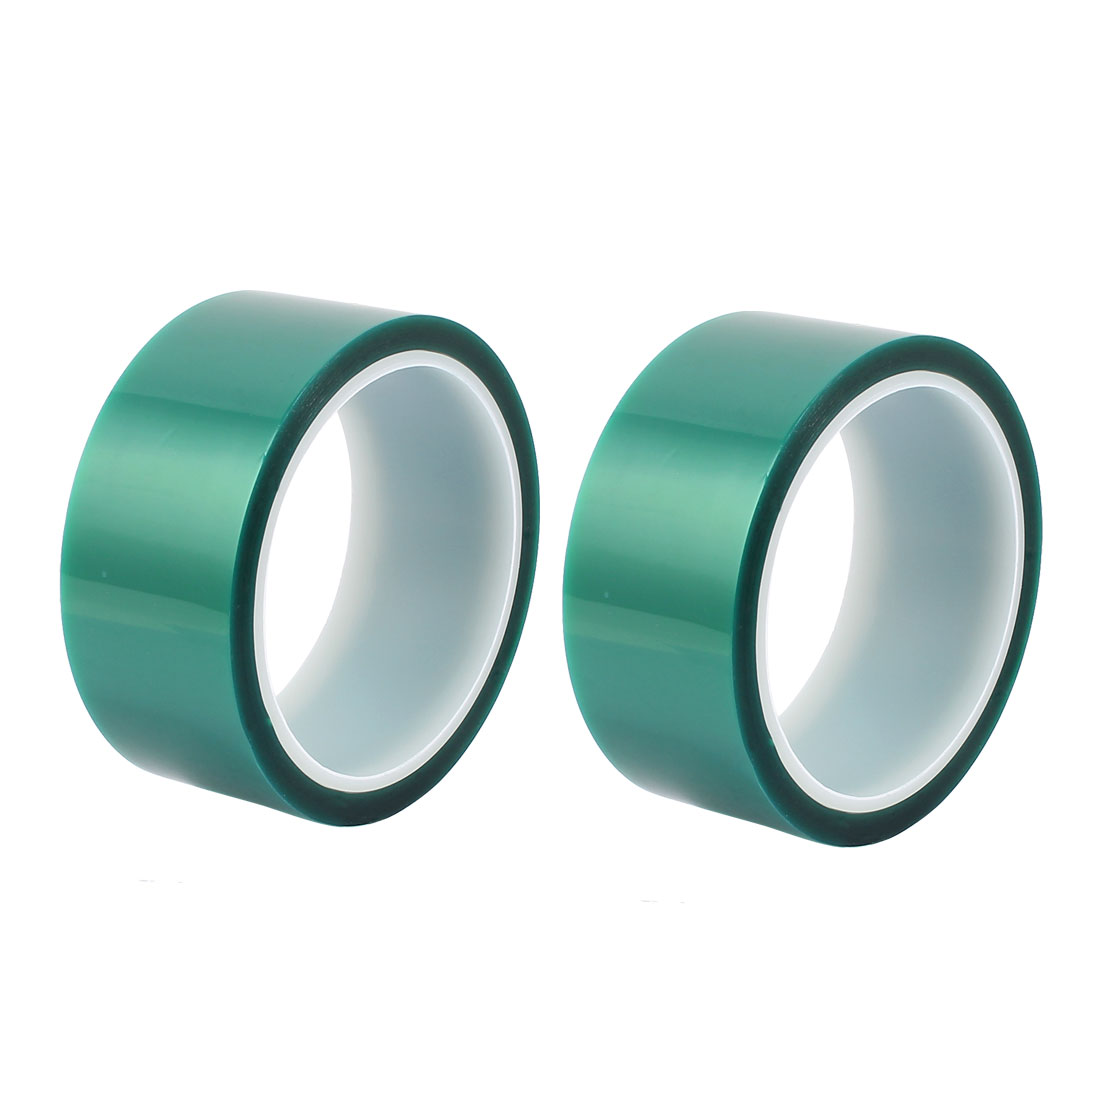 2pcs 40mm Width 33M Long Green PET High Temperature Heat Resistant PCB Solder Tape